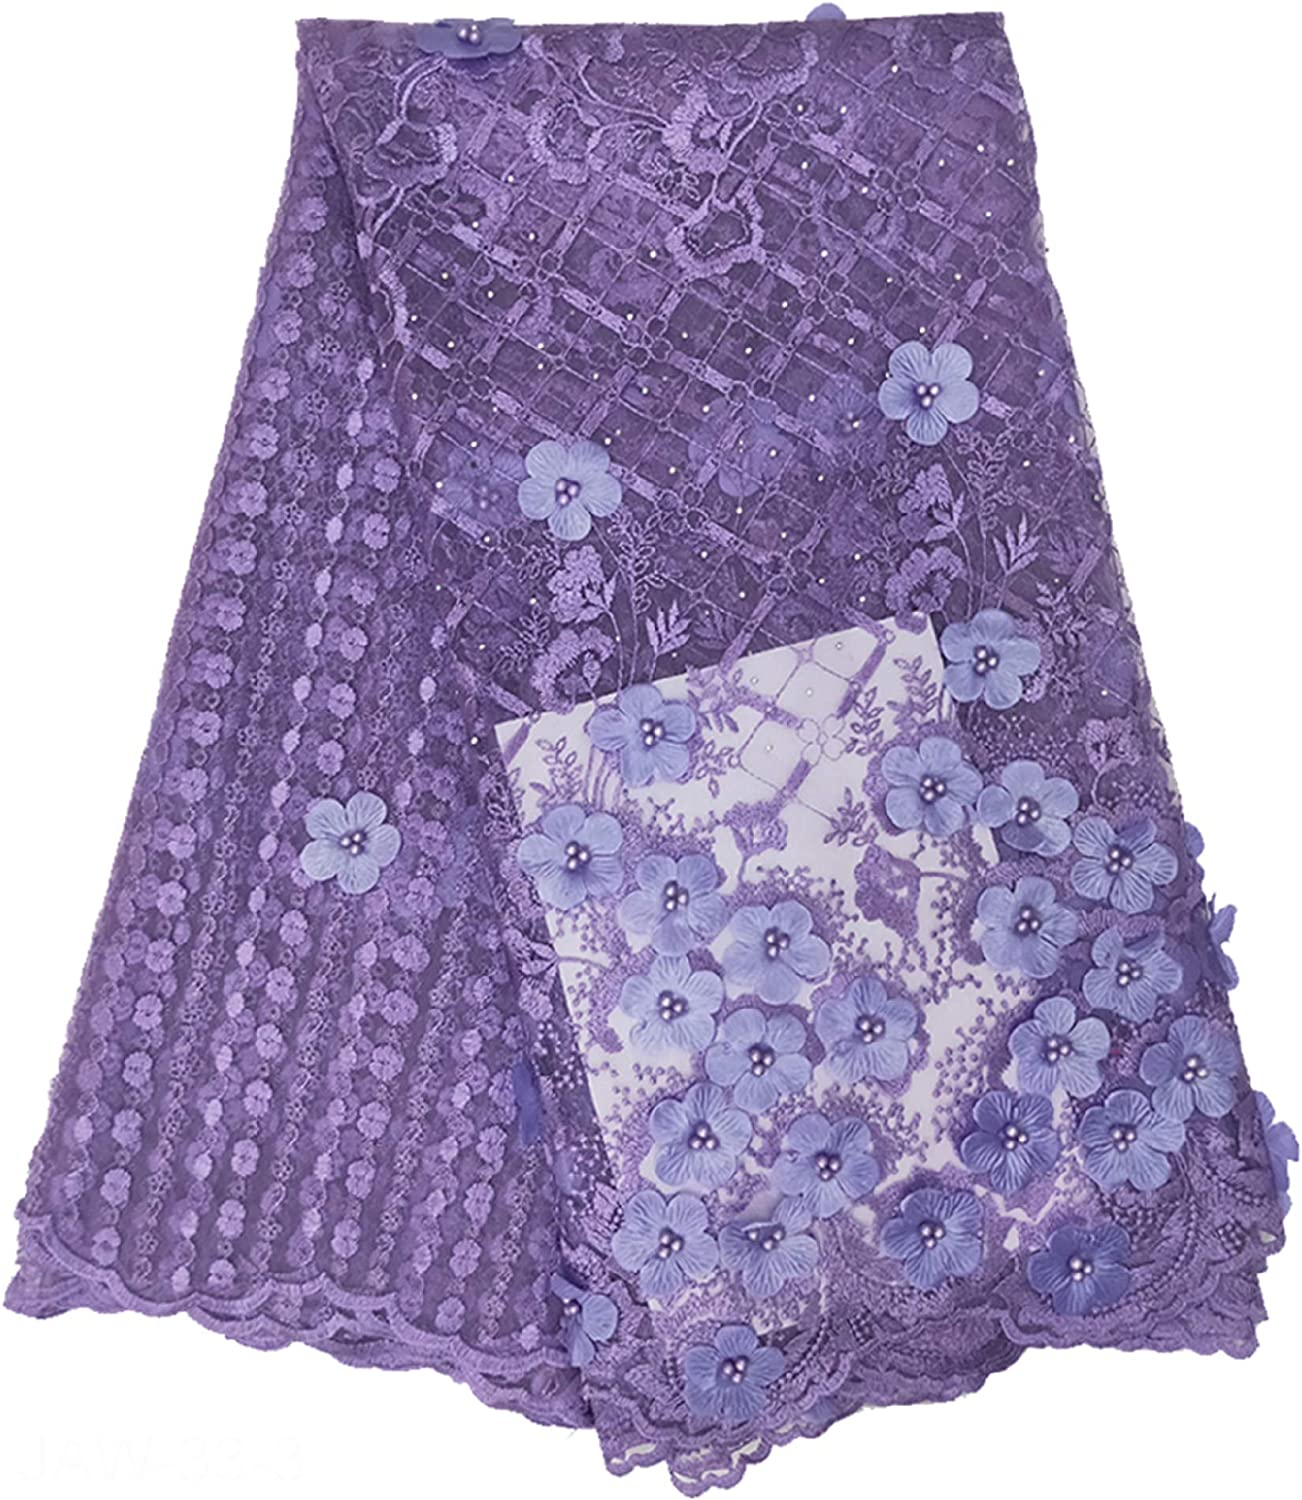 New Design Tulle Lace Fabric With Sequins Net Embroided Lace Applique For Wedding Dress 5 Yards